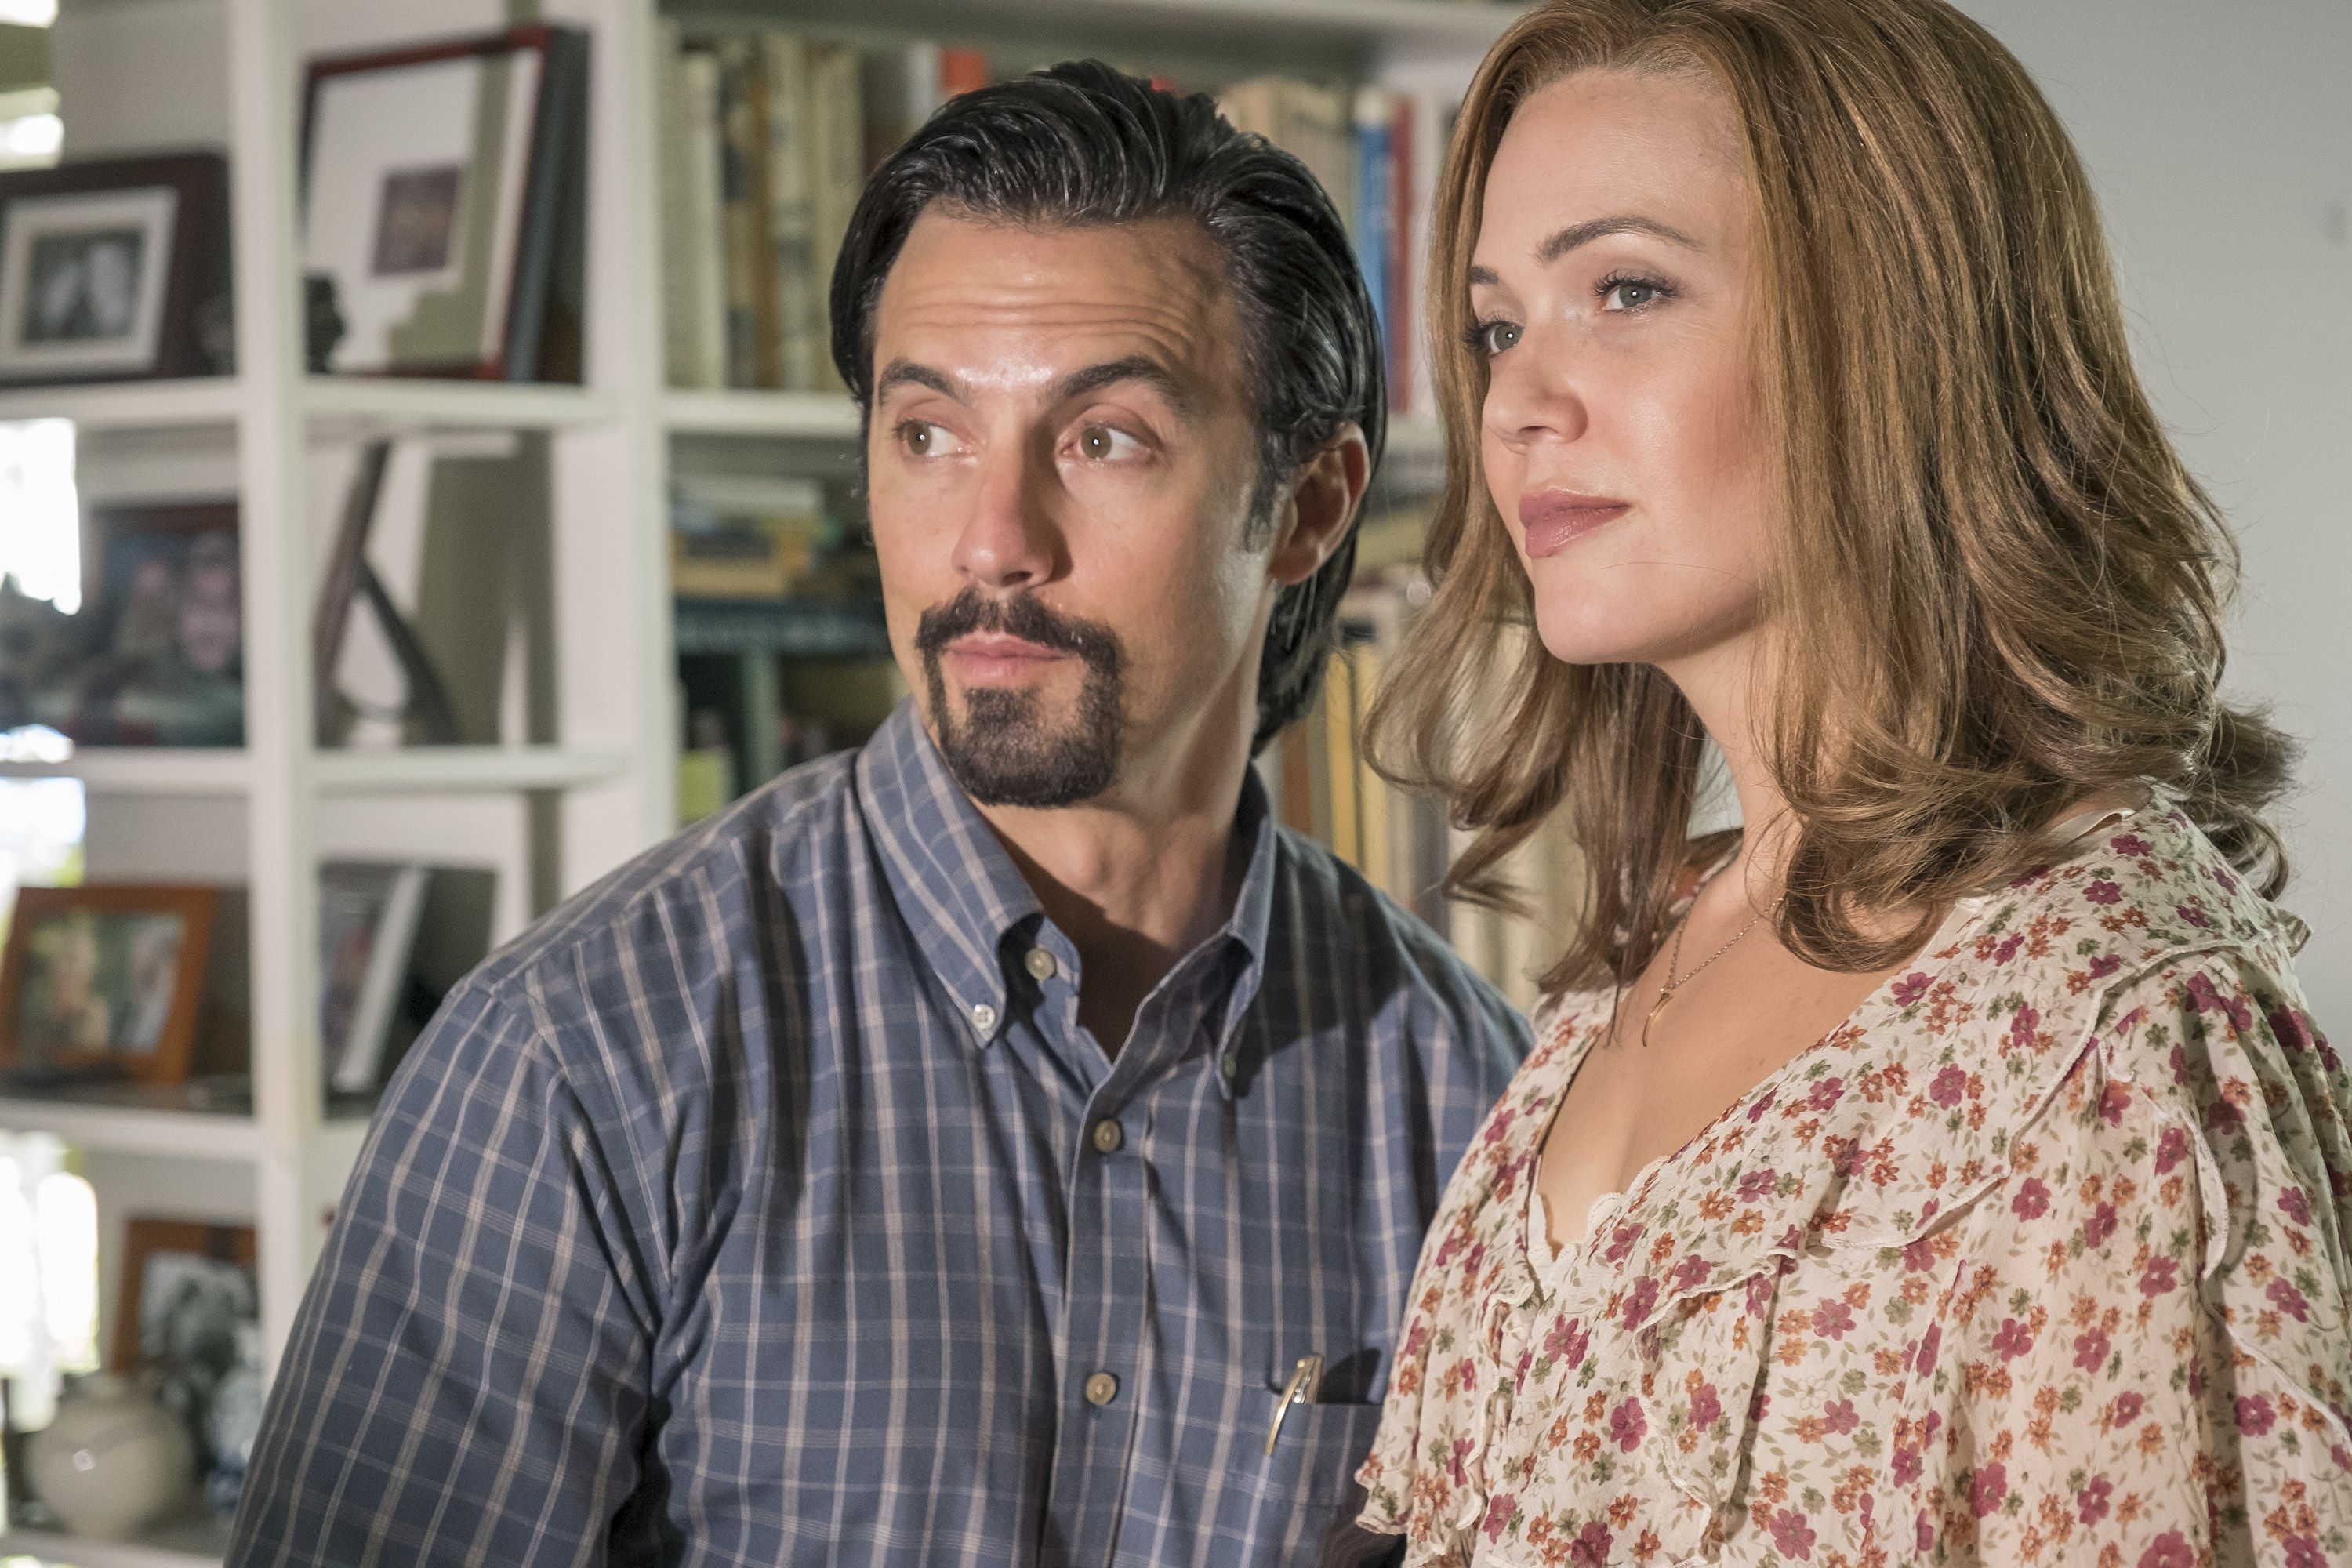 This Is Us Season 4 Spoilers, Air Date, Cast News, and More